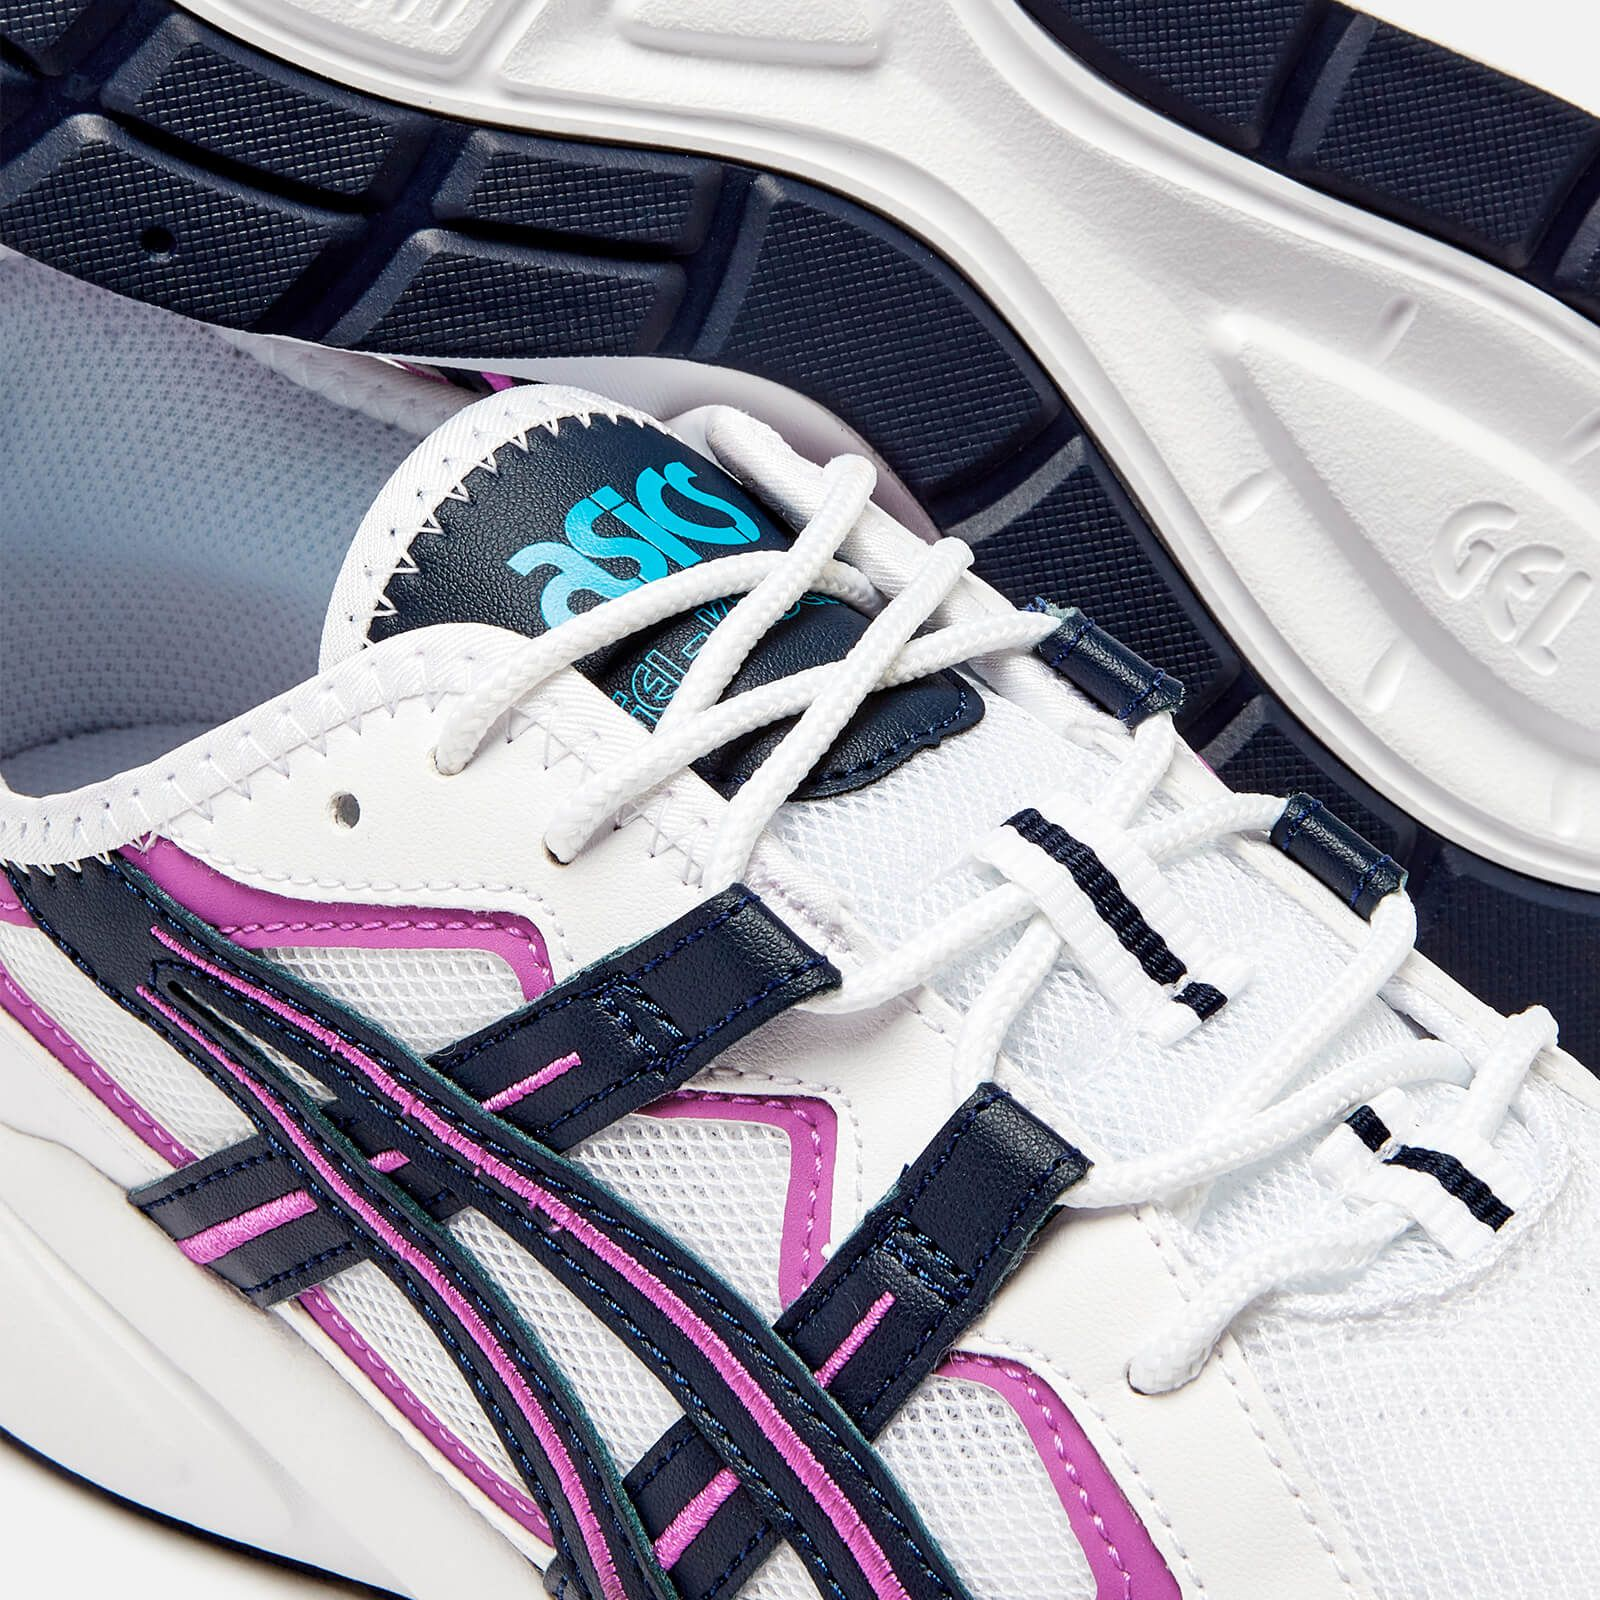 Asics Men S Lifestyle Gel Kayano 5 1 Trainers White Midnight In